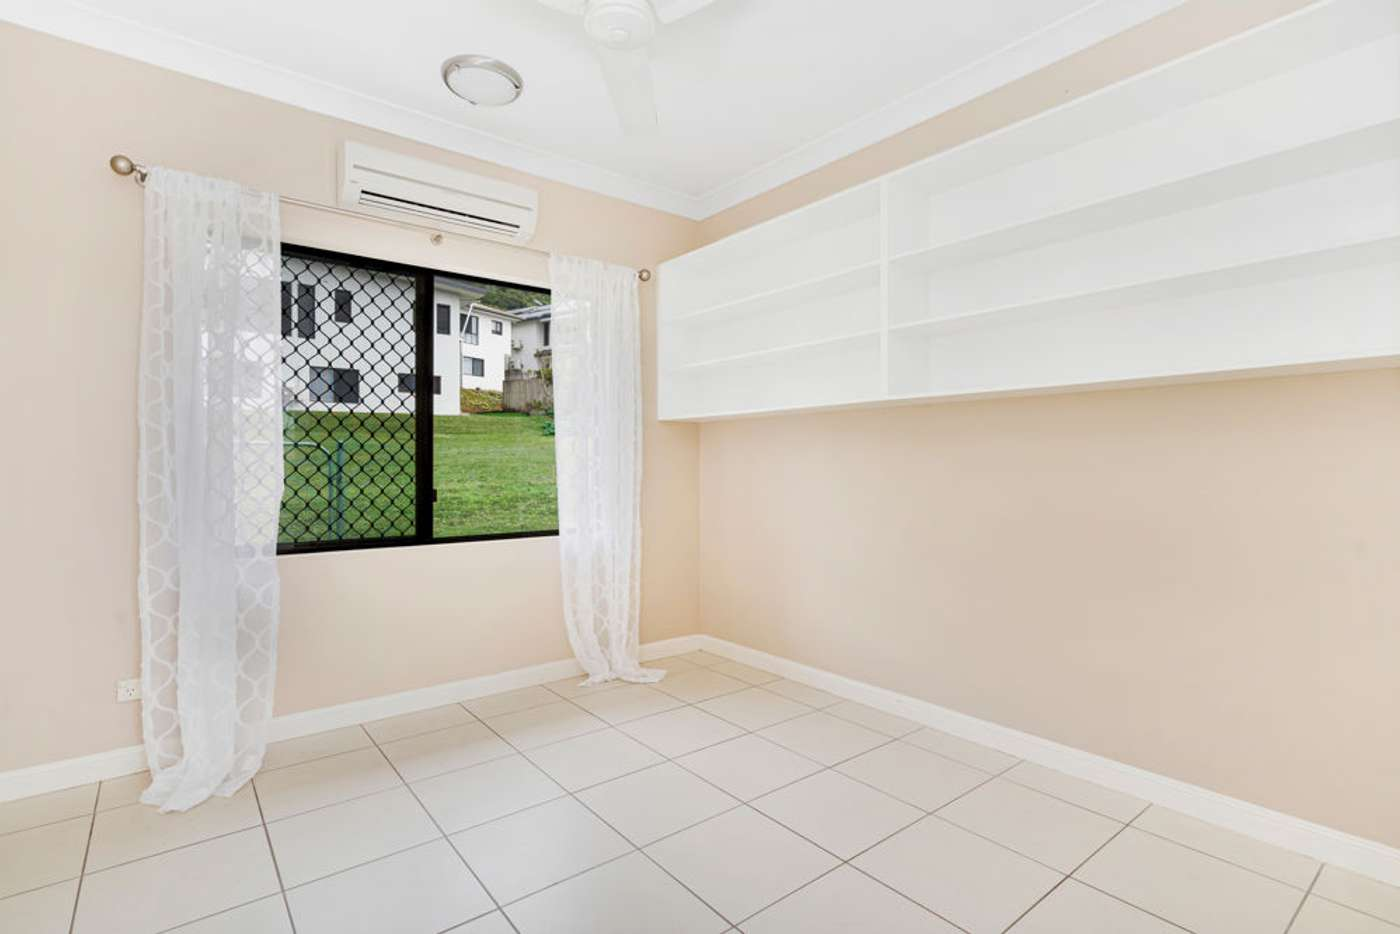 Seventh view of Homely house listing, 4 Trumpeter Street, Kanimbla QLD 4870